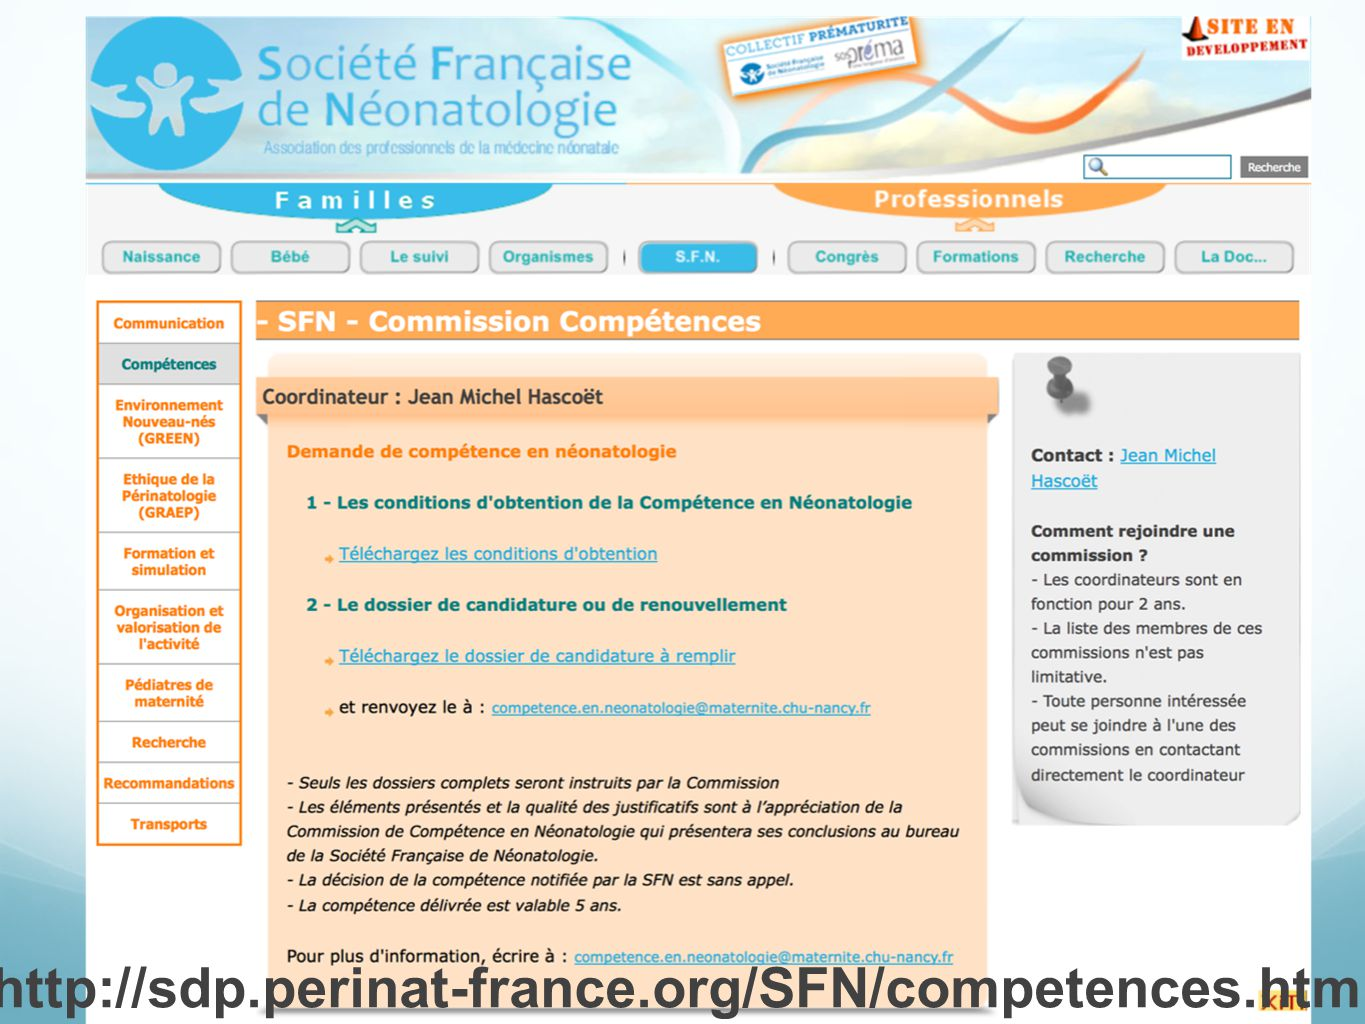 http://sdp.perinat-france.org/SFN/competences.html